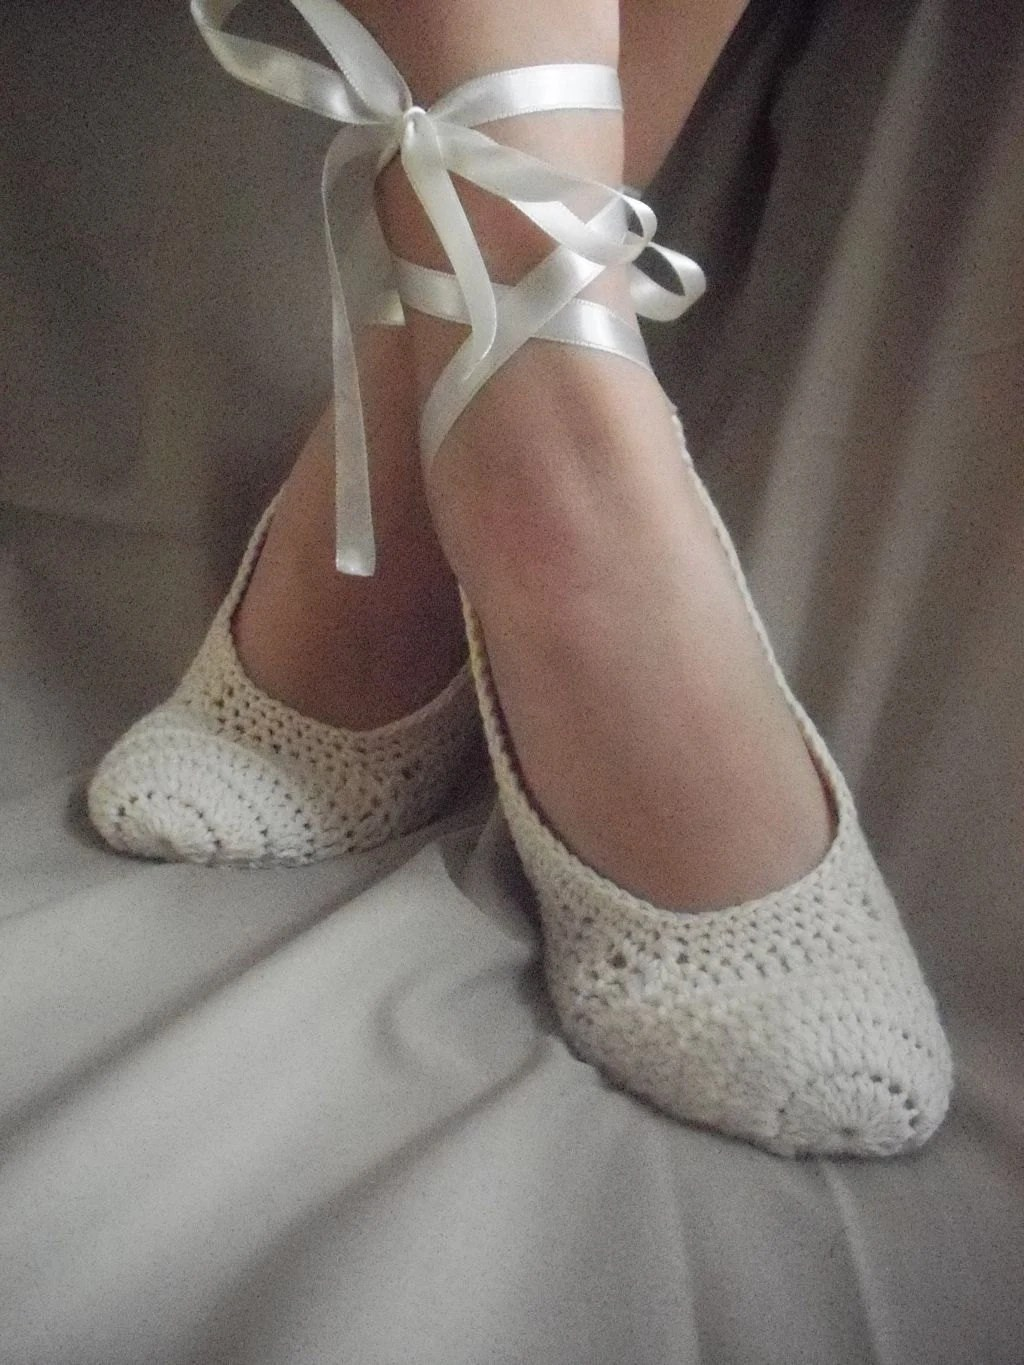 Bridal wedding dans shoes slippers green Bridal Party Bridesmaid